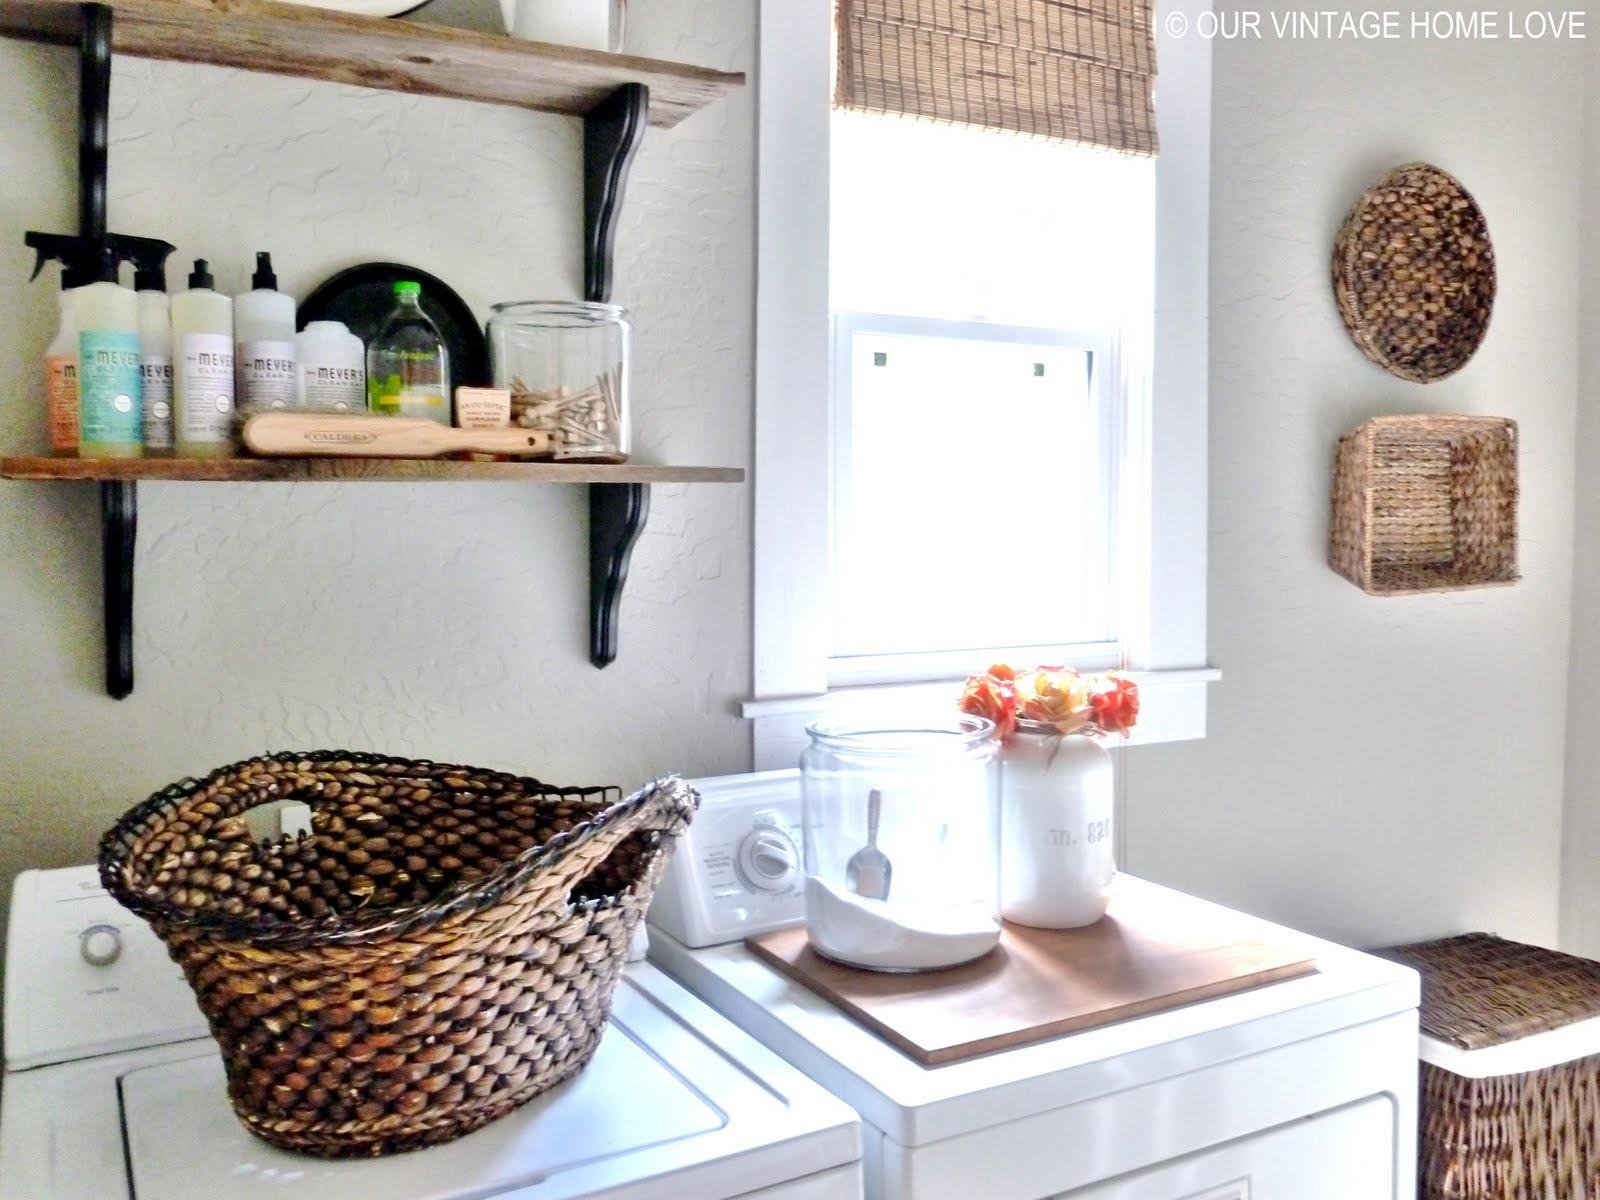 Our Vintage Home Love Laundry Room Ideas